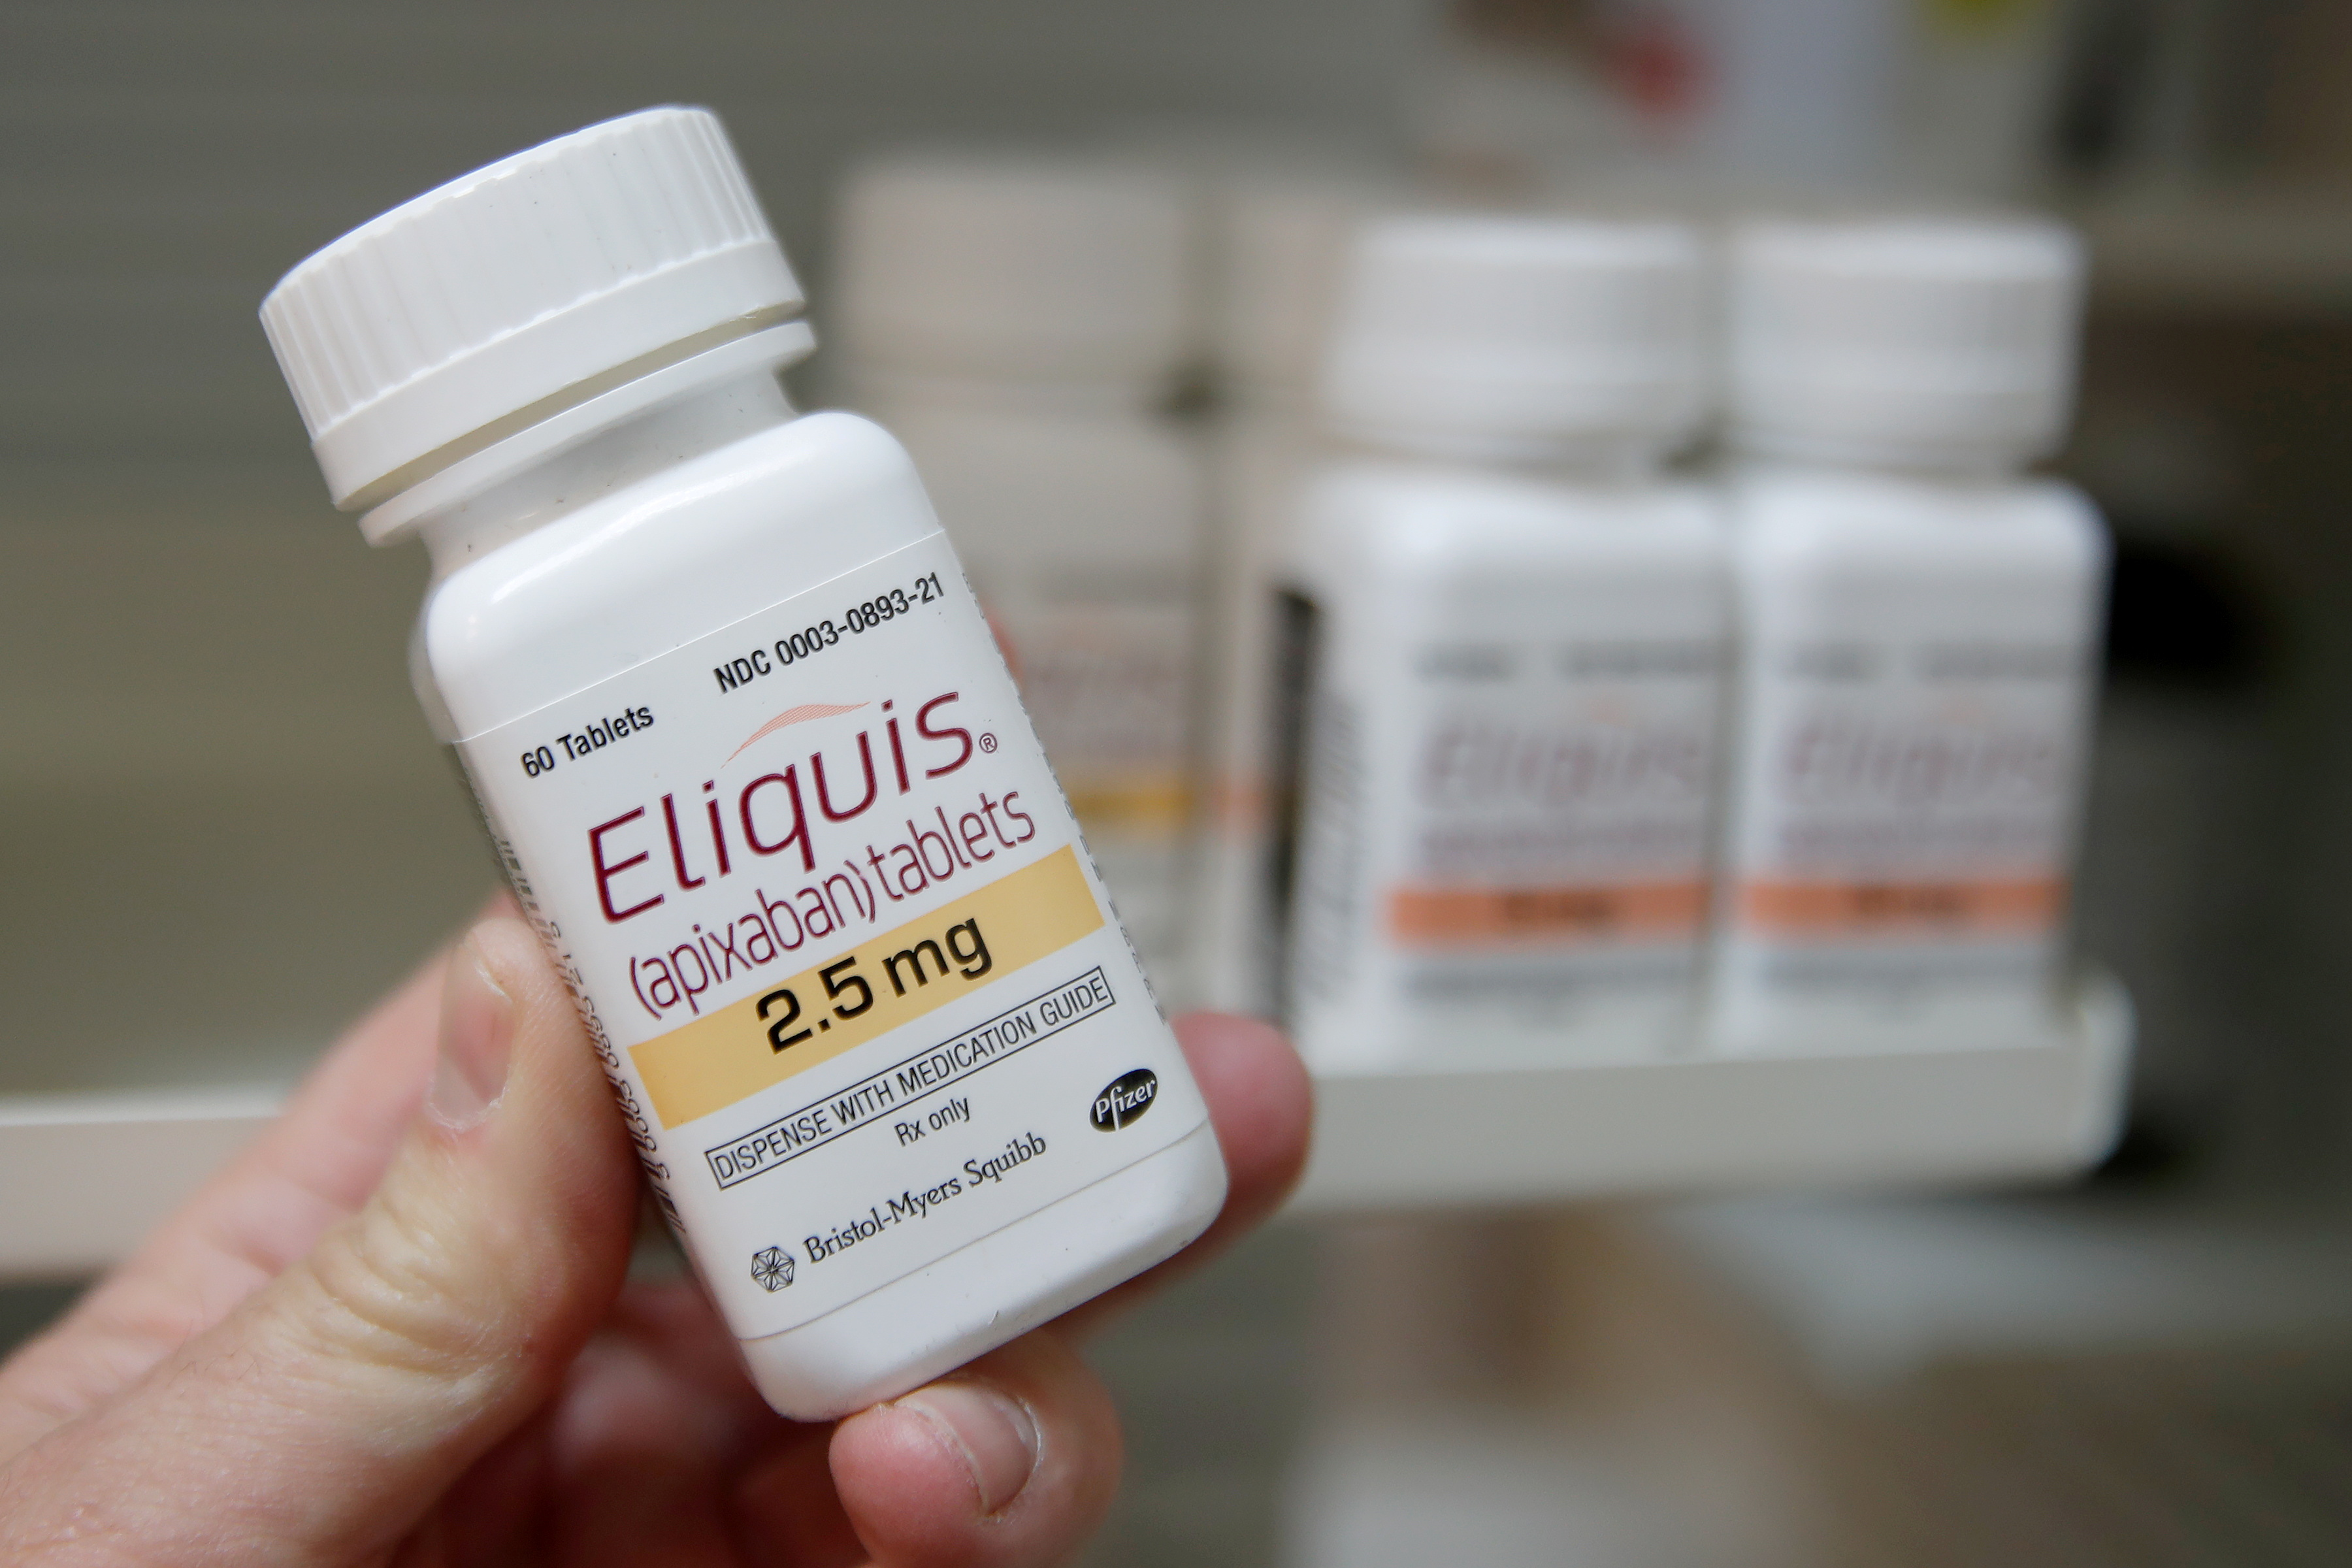 A pharmacist holds a bottle of the drug Eliquis,  sold by Bristol Myers Sqibb and Pfizer at a pharmacy in Provo, Utah, U.S. January 9, 2020.   REUTERS/George Frey